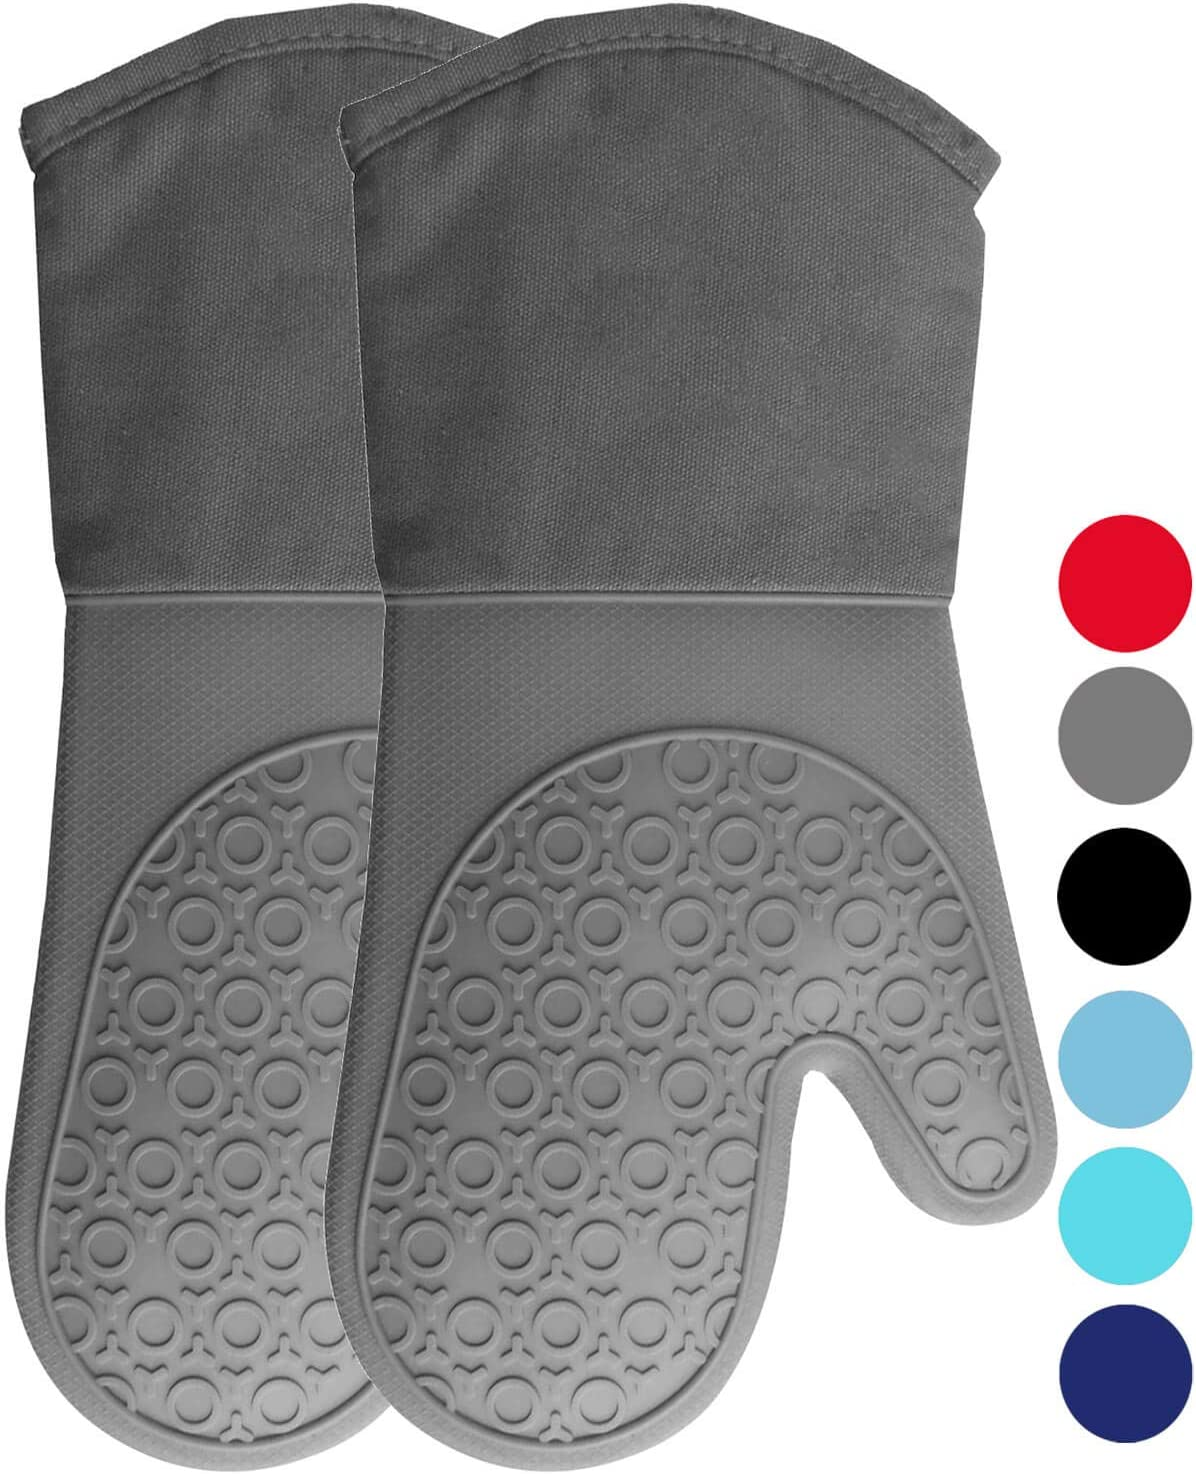 HOMWE Extra Long Professional Silicone Oven Mitt, Oven Mitts with Quilted Liner, Heat Resistant Pot Holders, Flexible Oven Gloves, Gray, 1 Pair, 13.7 Inch: Home & Kitchen